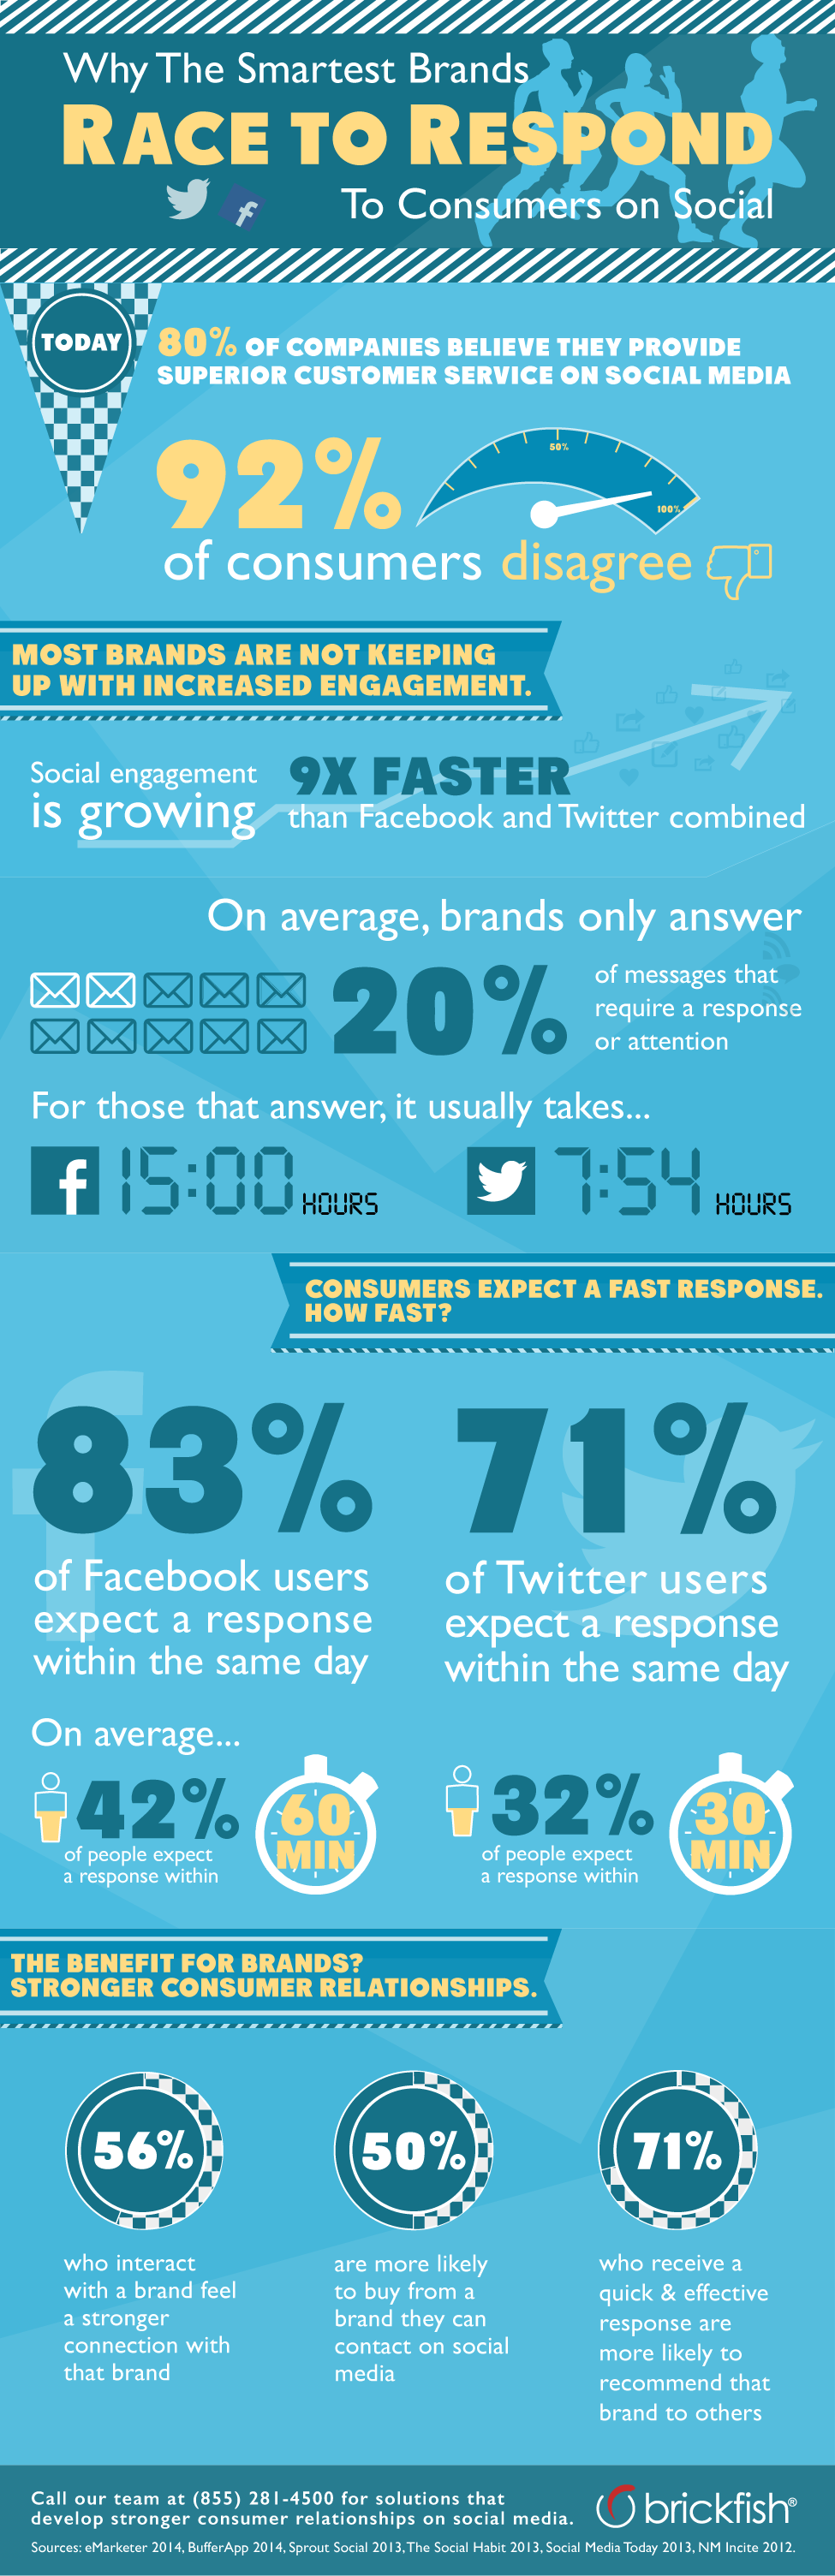 wersm_infographic_customer_Service_social_media